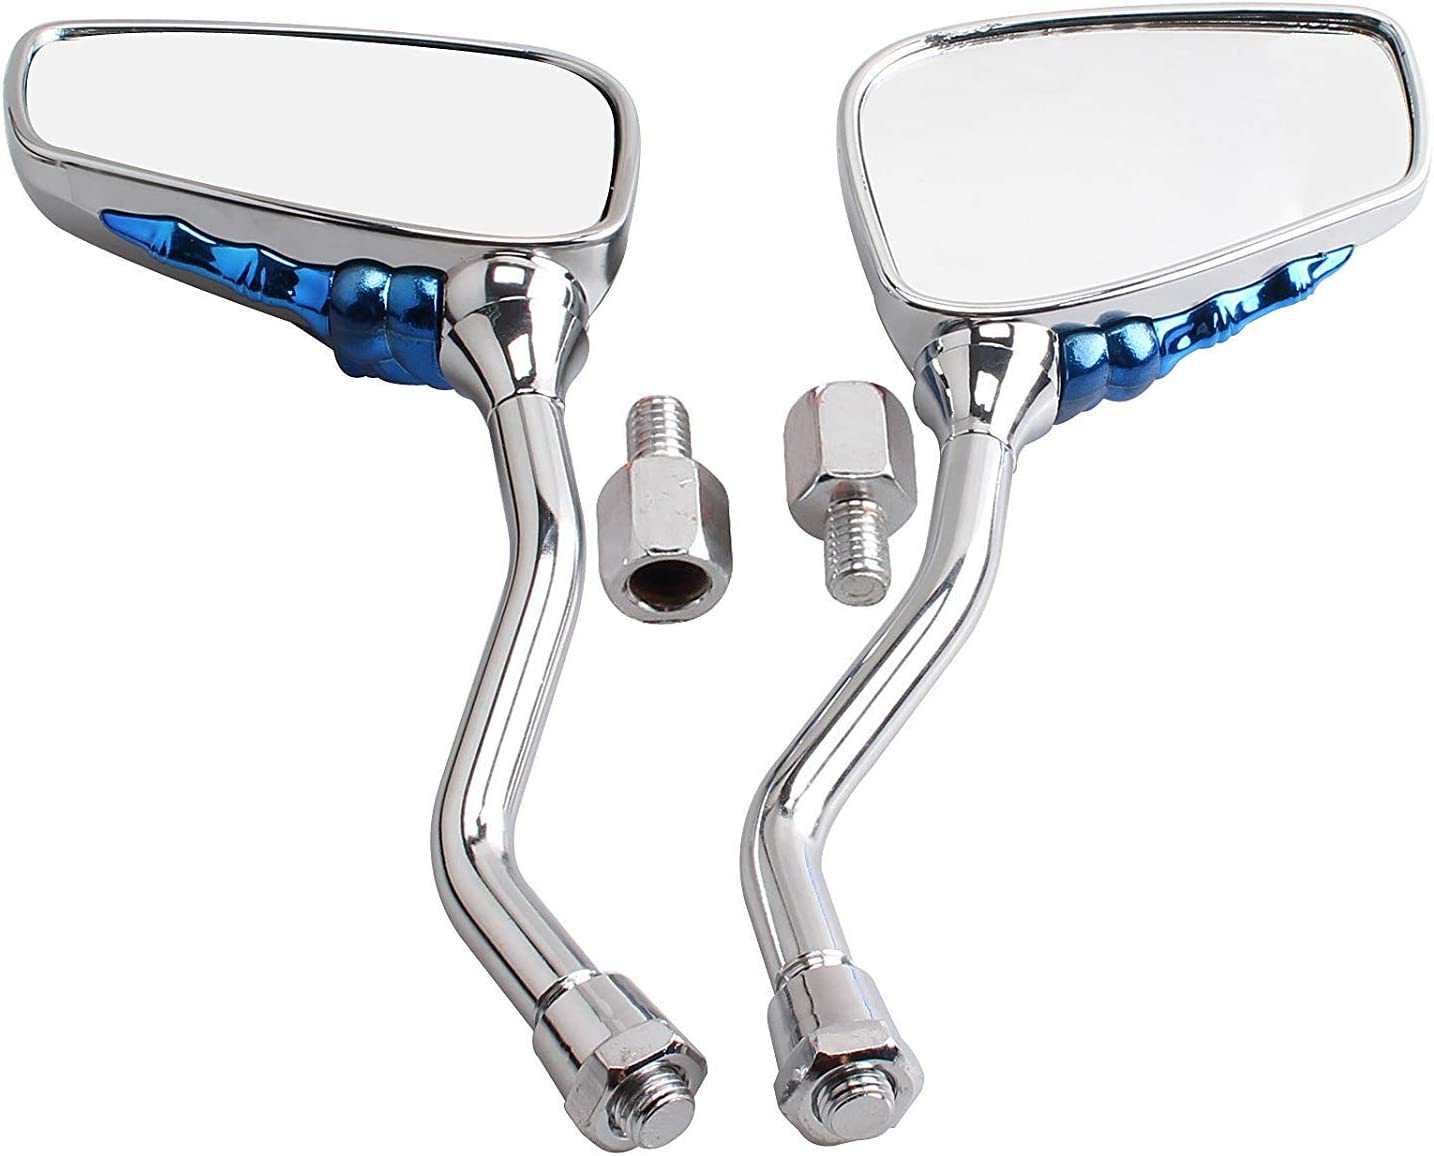 Blue BauZeit Universal Motorcycle Rearview Mirrors Folding Motorbike Side Mirror 8mm 10mm Thread Bolts Plastic Skull Skeleton Hand fit for ATV Quad 4 Wheeler Pit Dirt Bike Moped Scooter